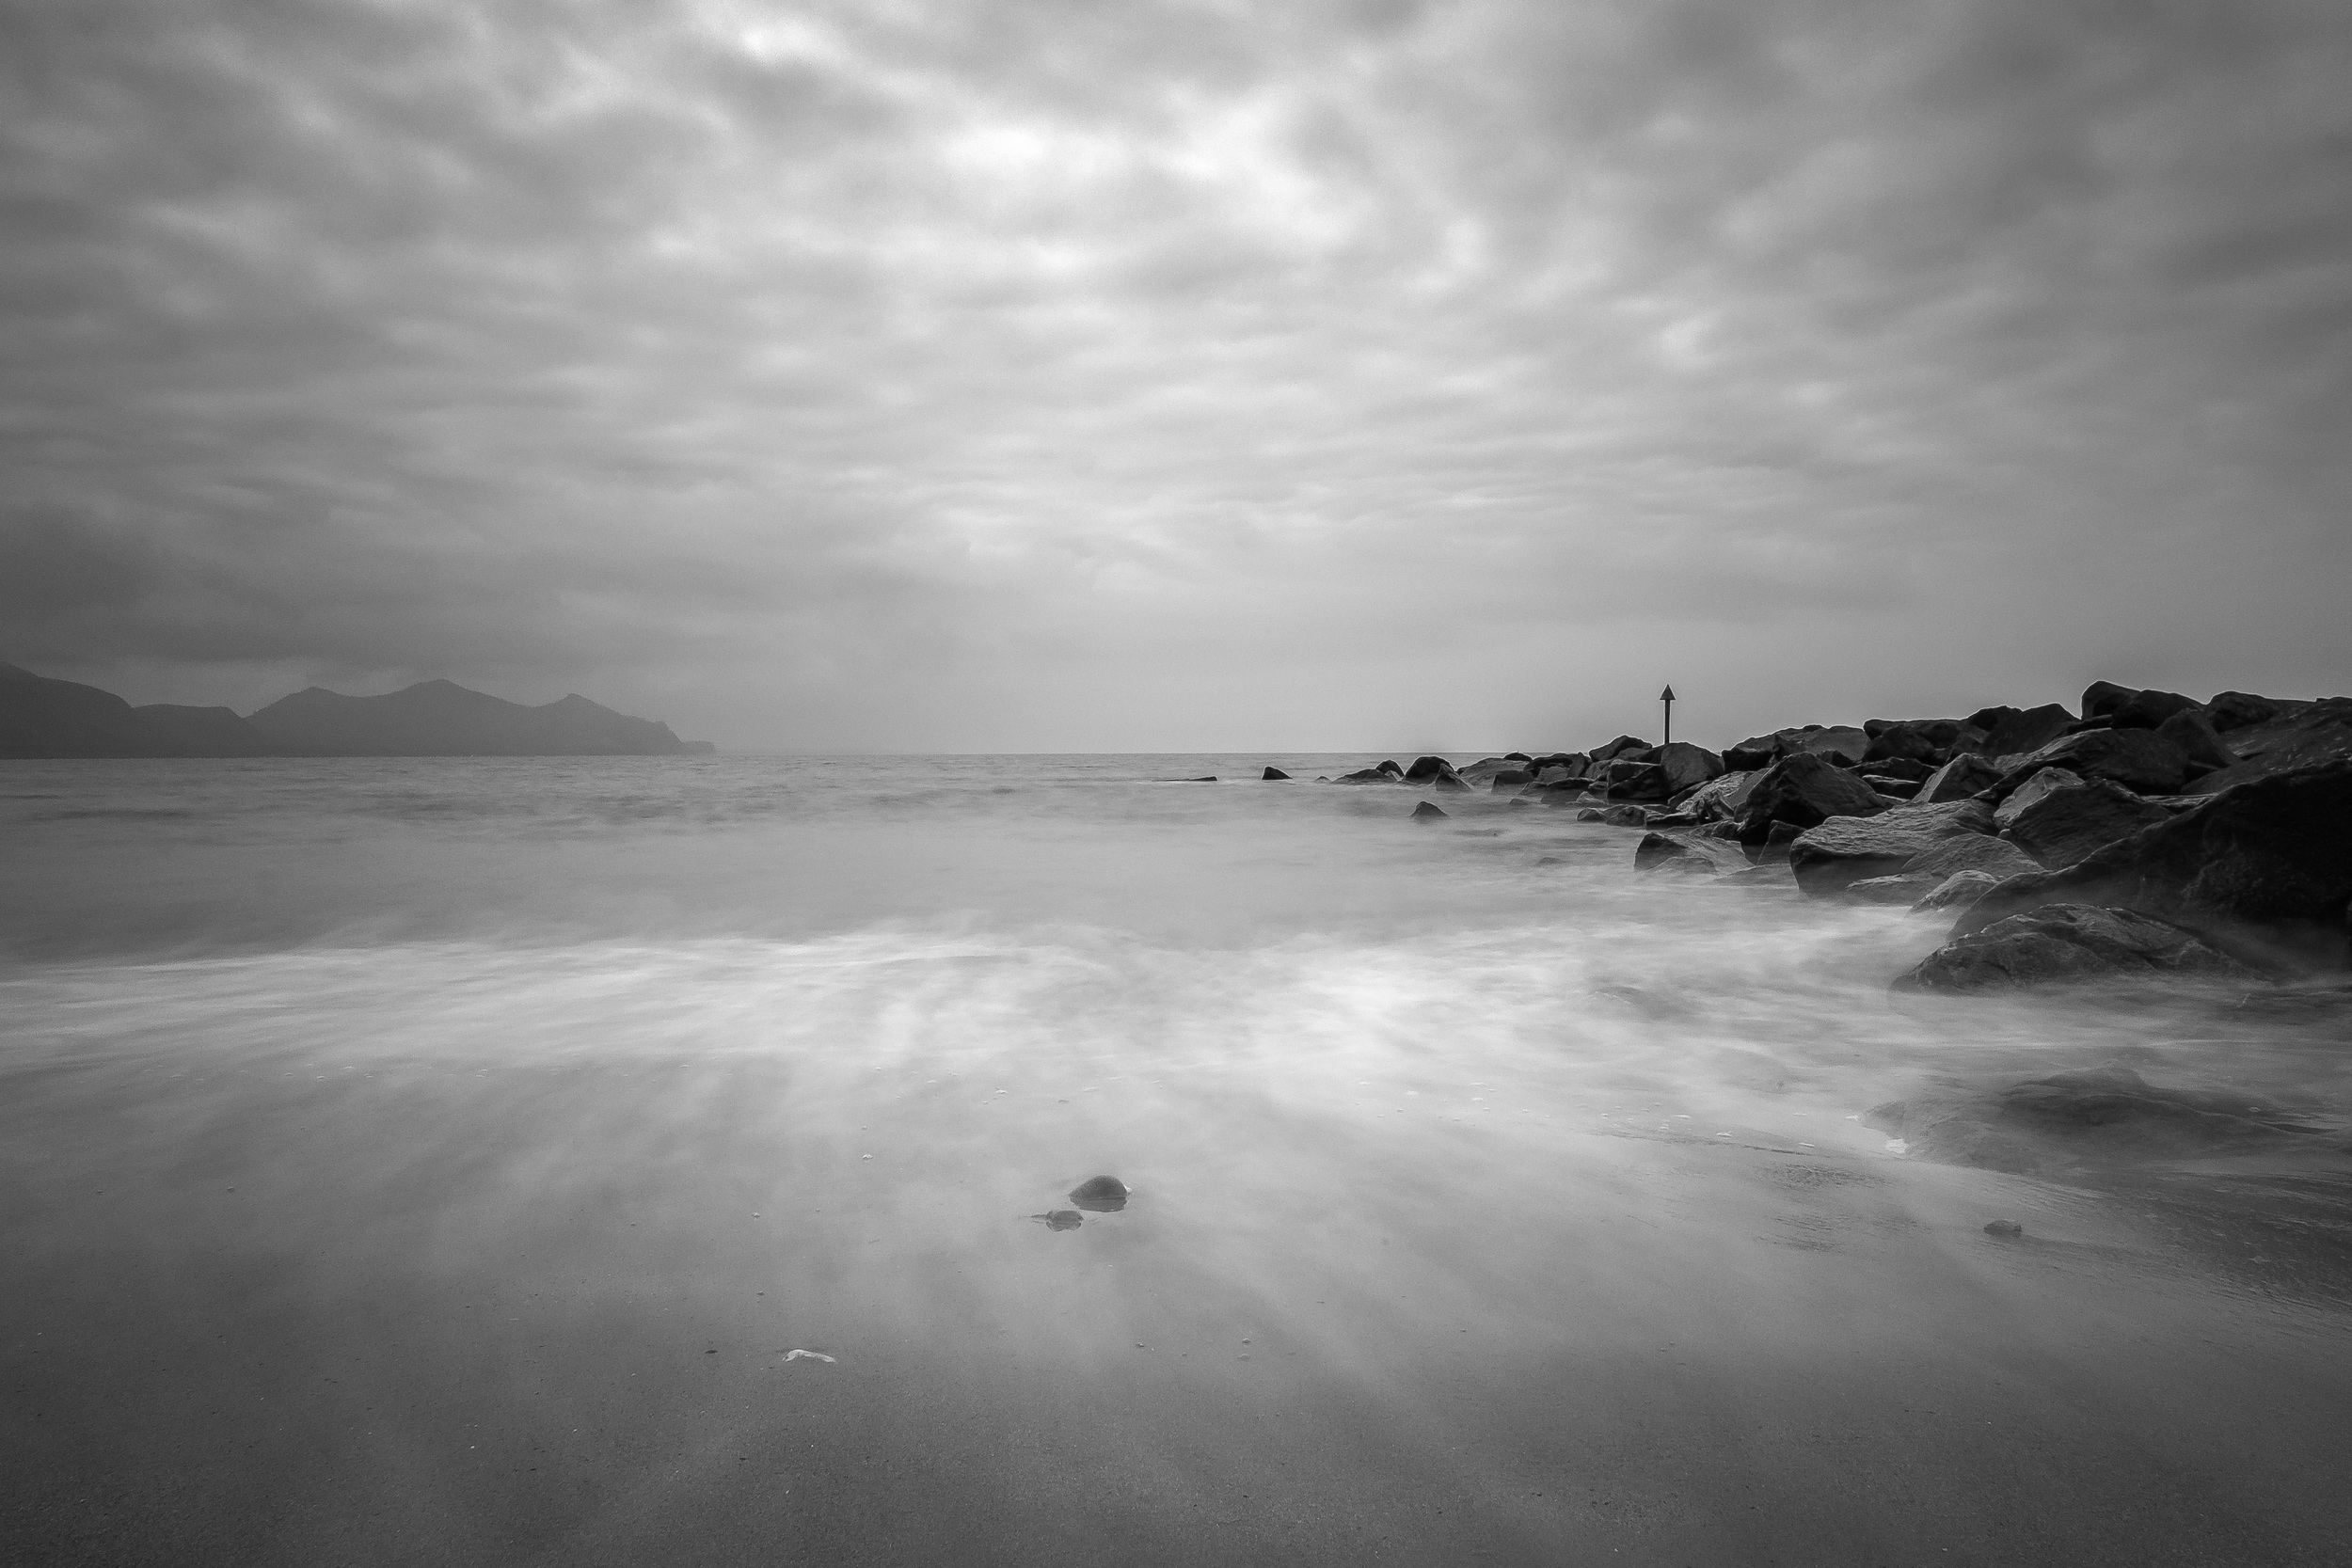 Dinas Dinelle - X-Pro1 + 18mm f/2 & B+W 110 ND Filter @ f/16. ISO200. 3.5 second exposure. Converted into monochrome in Lightroom.